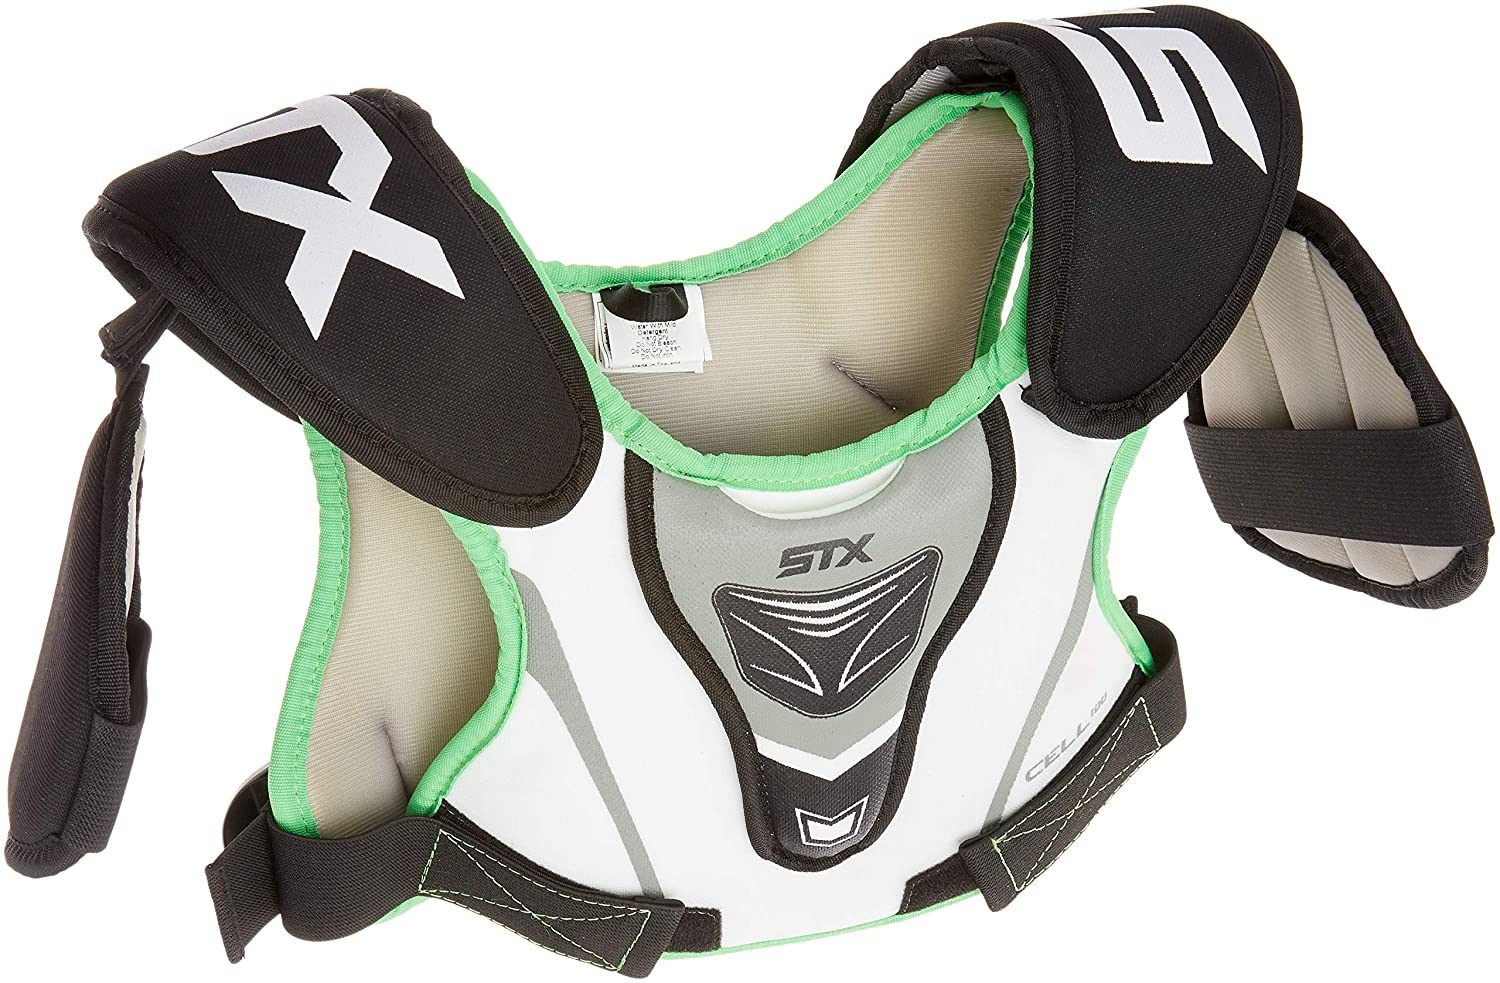 STX Lacrosse Cell 100 Youth Boy's Lacrosse Shoulder Pad